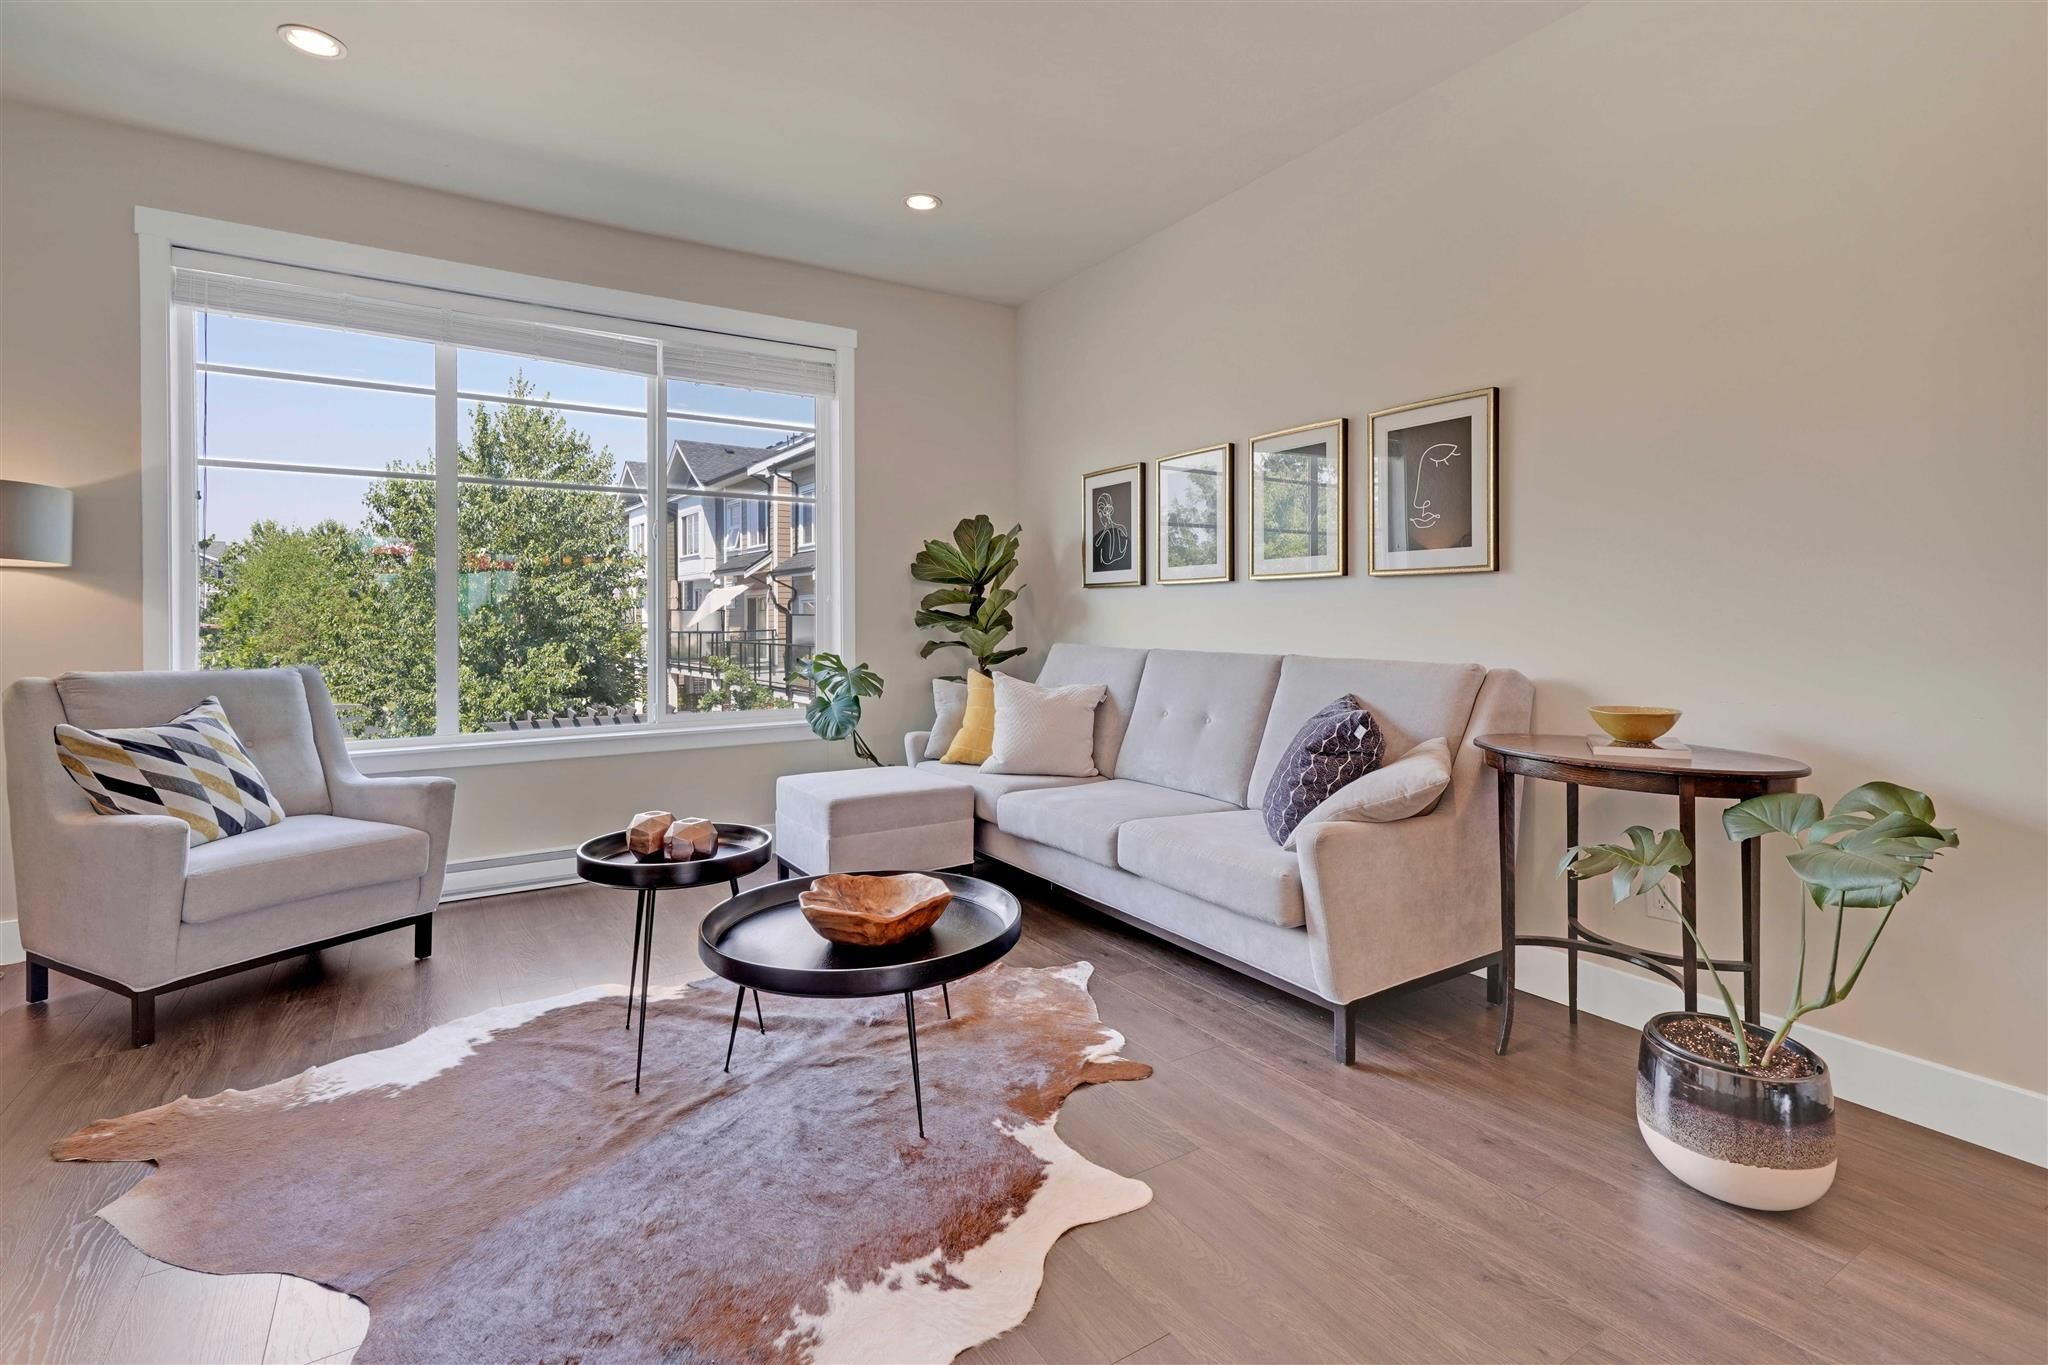 """Main Photo: 22 21150 76A Avenue in Langley: Willoughby Heights Townhouse for sale in """"Hutton"""" : MLS®# R2597336"""